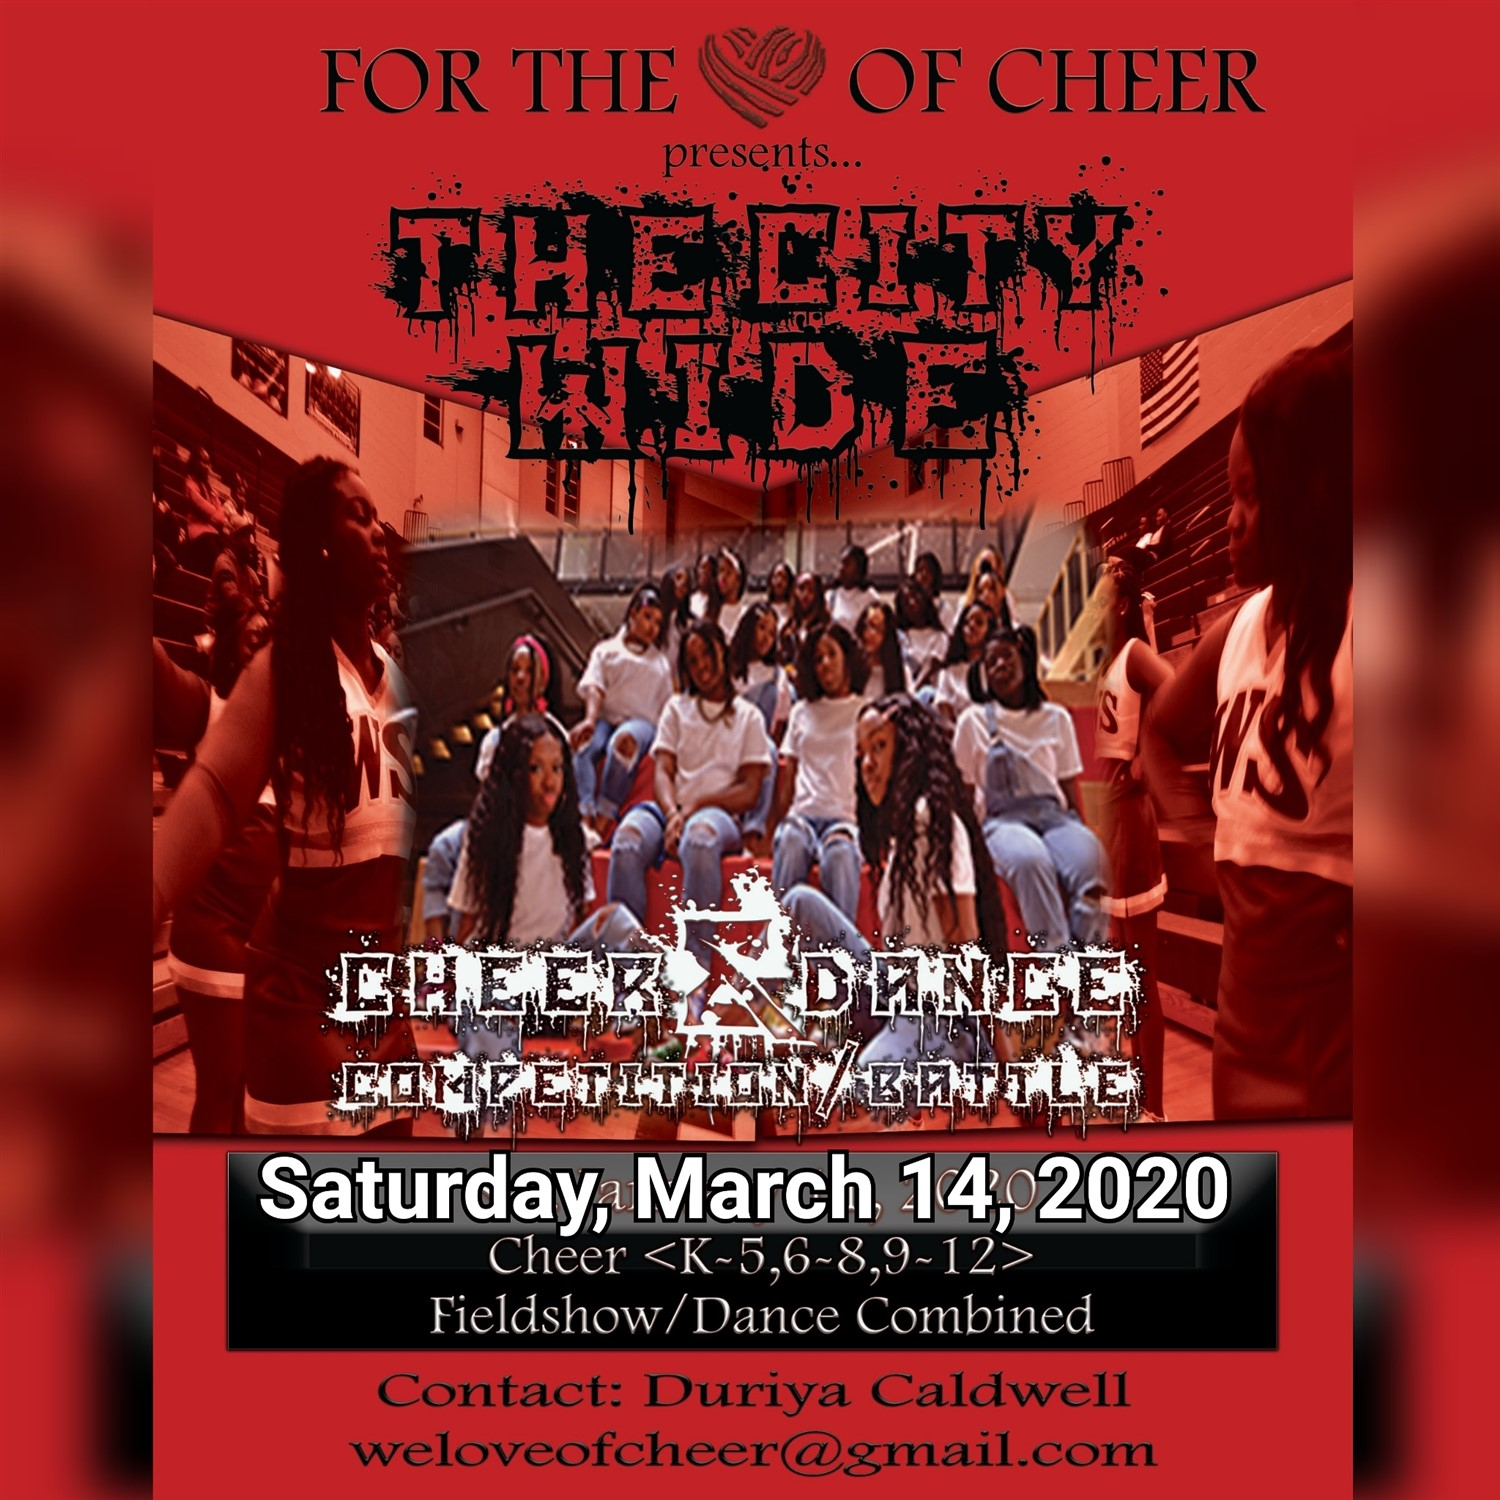 For The Love of Cheer Cheer/Dance Competition on Mar 14, 12:00@White Station High School - Buy tickets and Get information on For The Love of Cheer